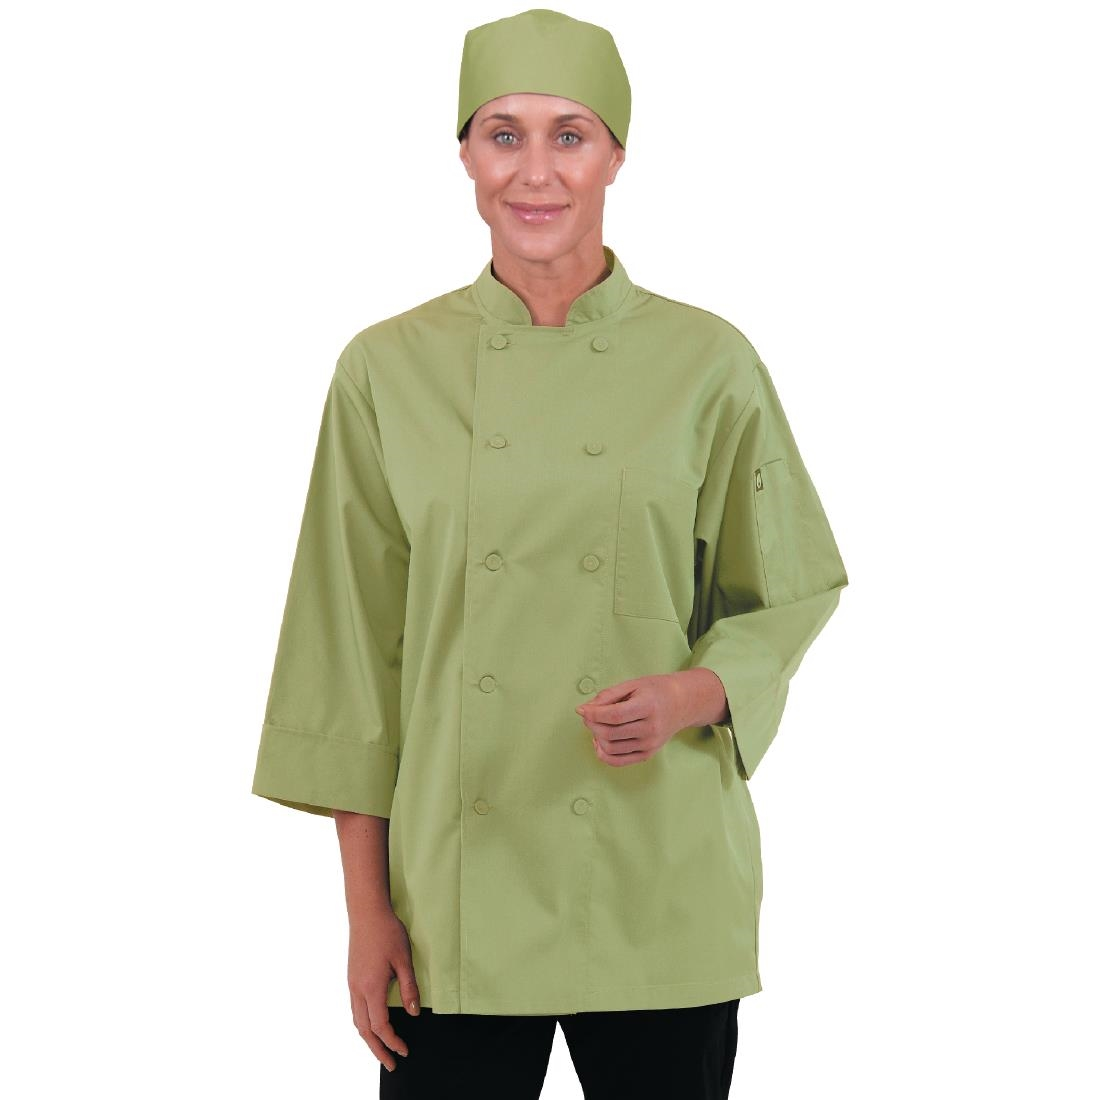 Click to view product details and reviews for Chef Works Unisex Chefs Jacket Lime Xl.